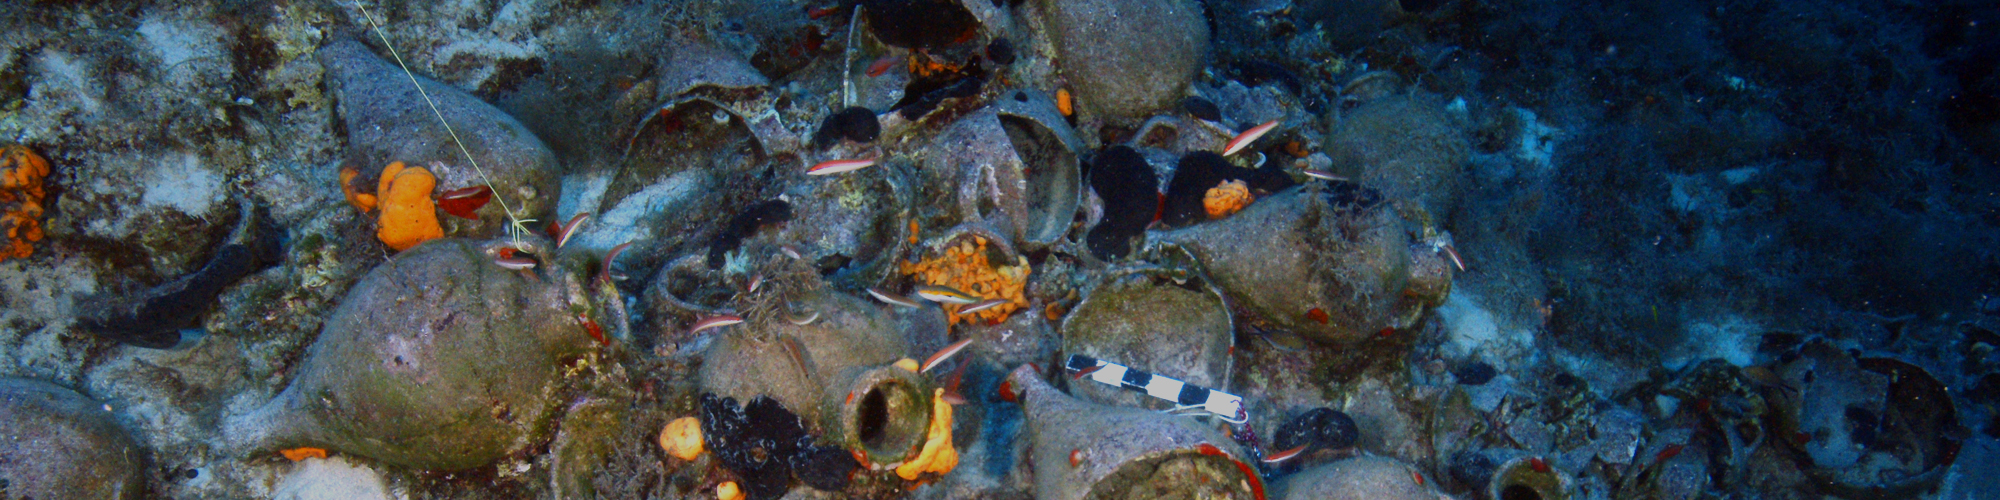 CAIRN Archaeologist Assists in the Discovery of Ancient Shipwrecks in Small Greek Archipelago